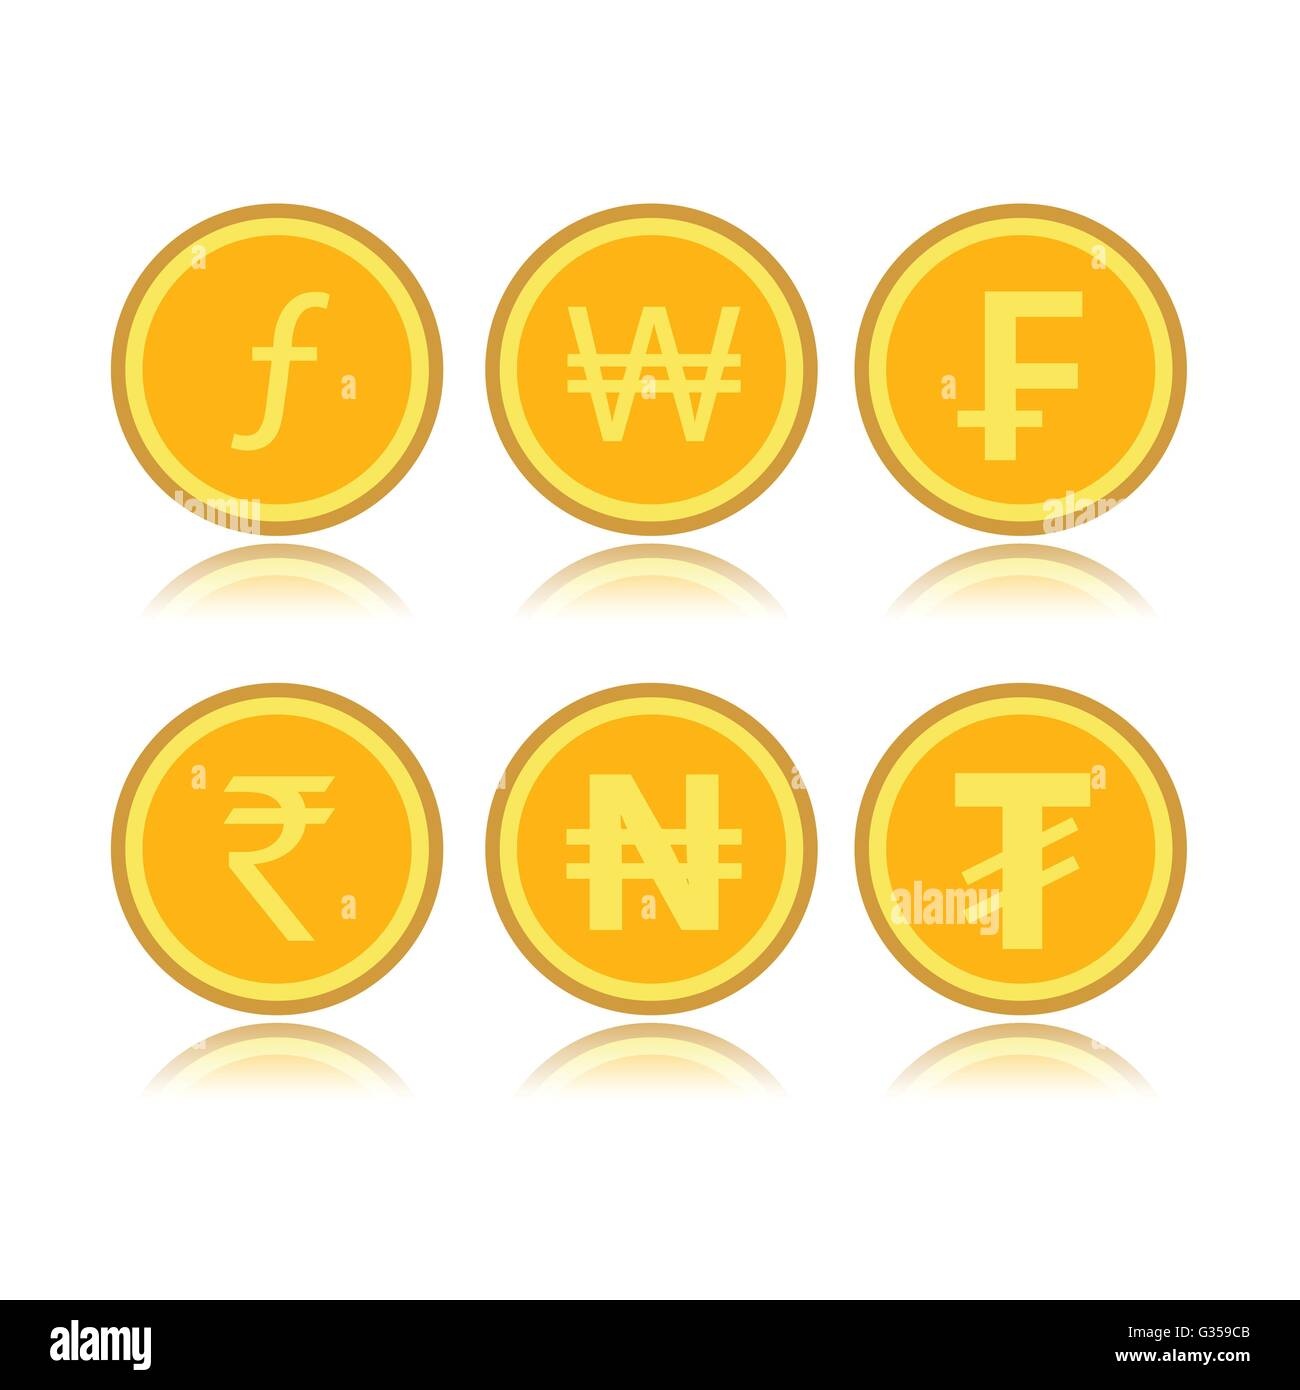 Set of foreign coins - Stock Vector